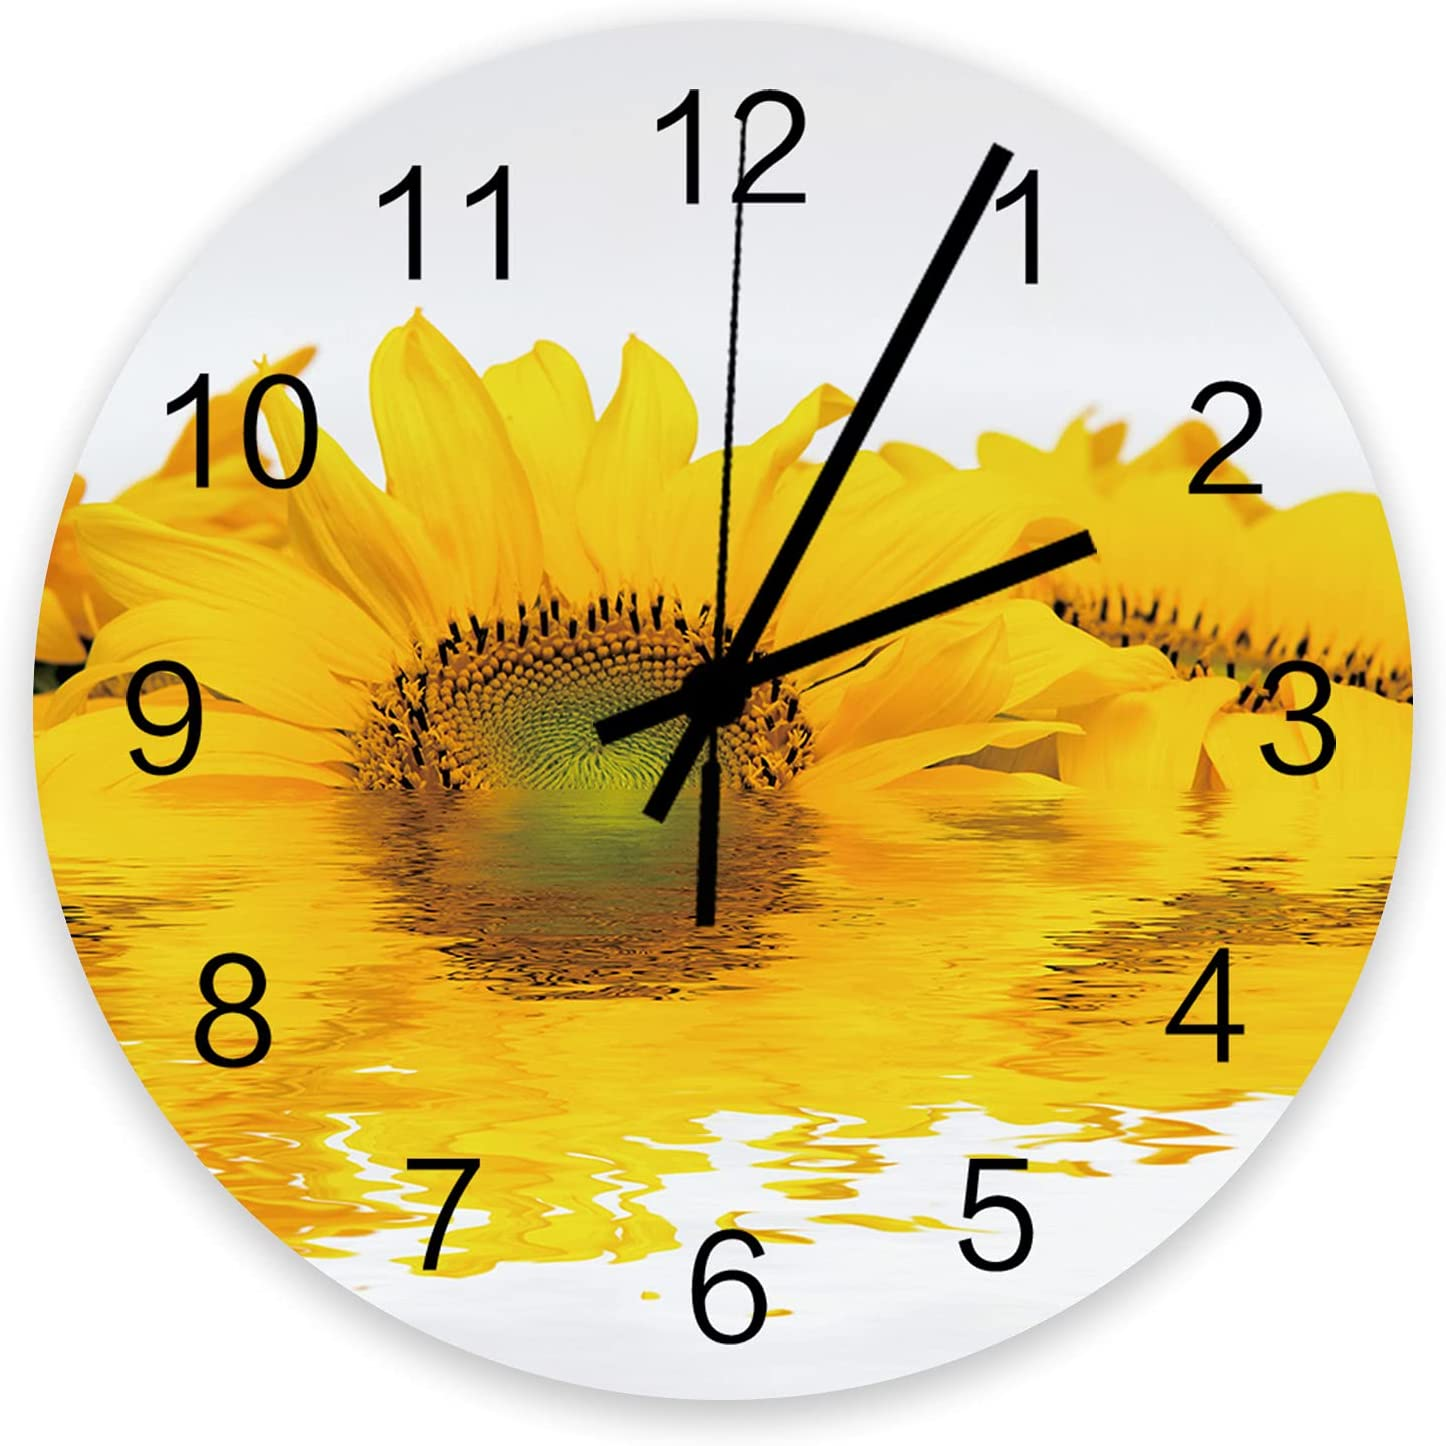 Home Decor 12 Inch Round Wooden Sun Close-up Clock Fresh Yellow 67% Ranking TOP7 OFF of fixed price